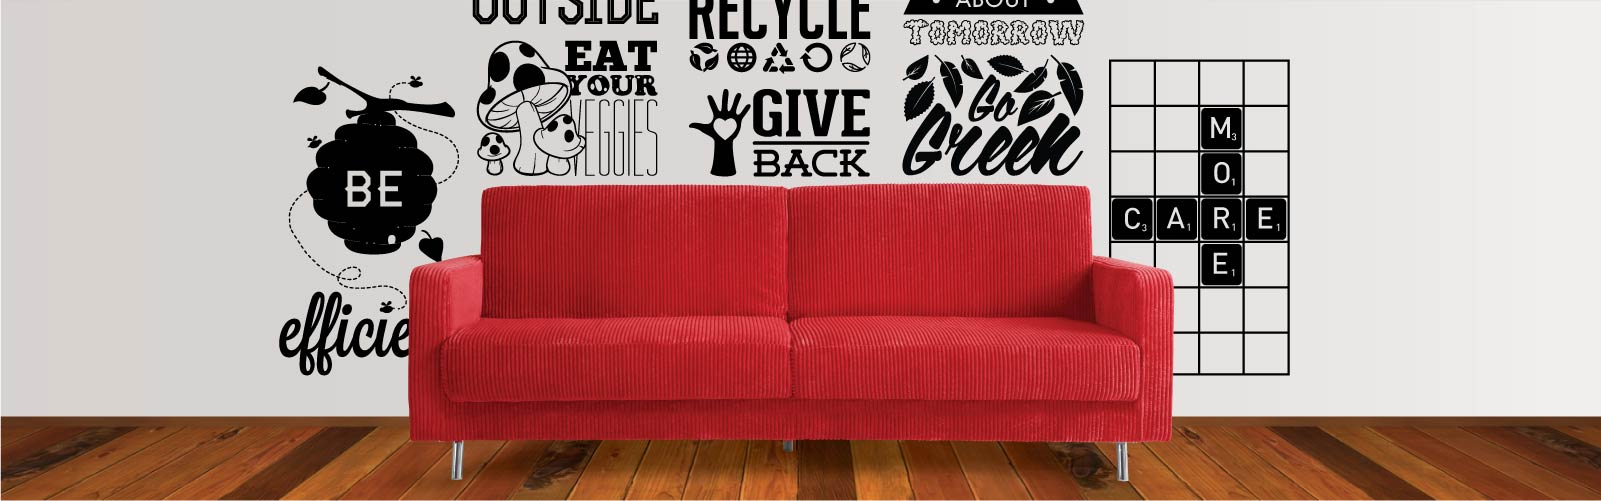 office collection wall quotes wall decals wallsneedlove amazing wall quotes office